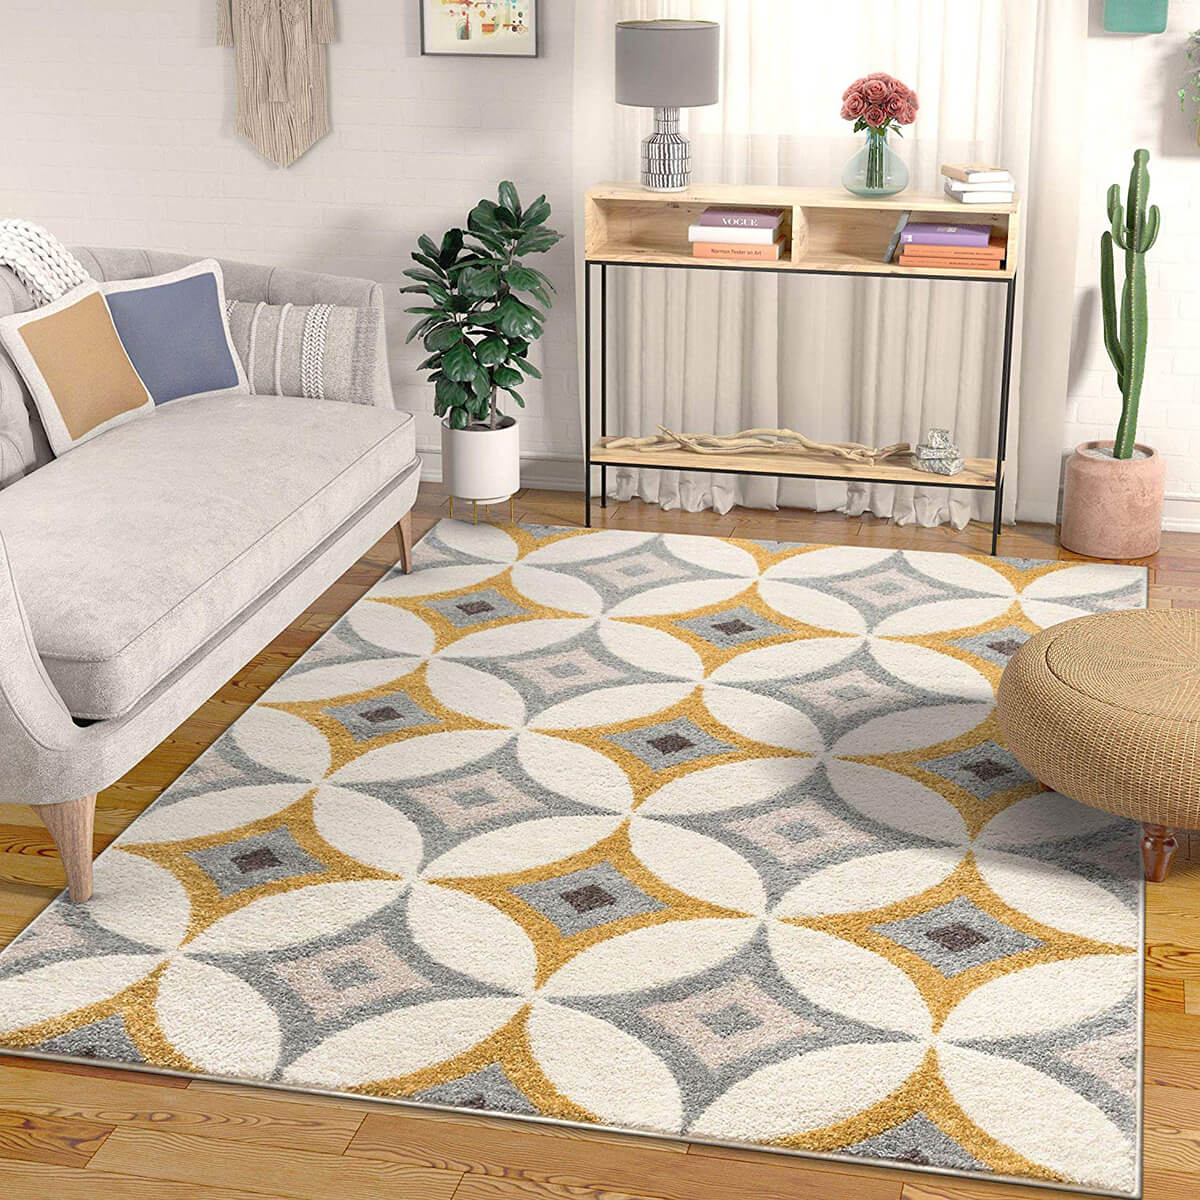 Blending the Home Decor Items You Choose